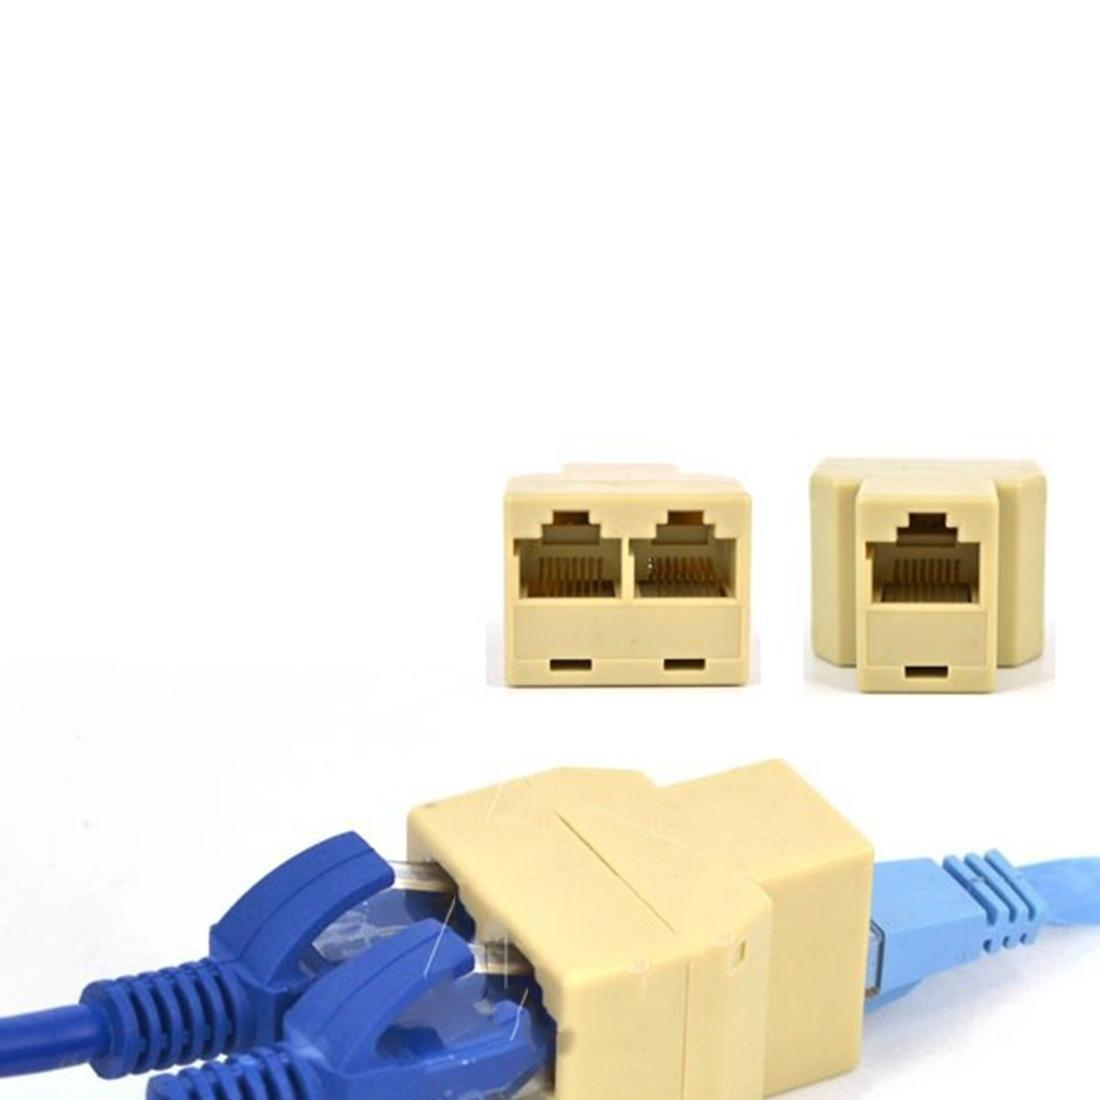 Wholesale New Rj45 Splitter Connector Cat5 Lan Ethernet Cat 5 Ends Wiring Adapter 8p8c Network Dual Cables Online Computer And Connectors From Wildeer